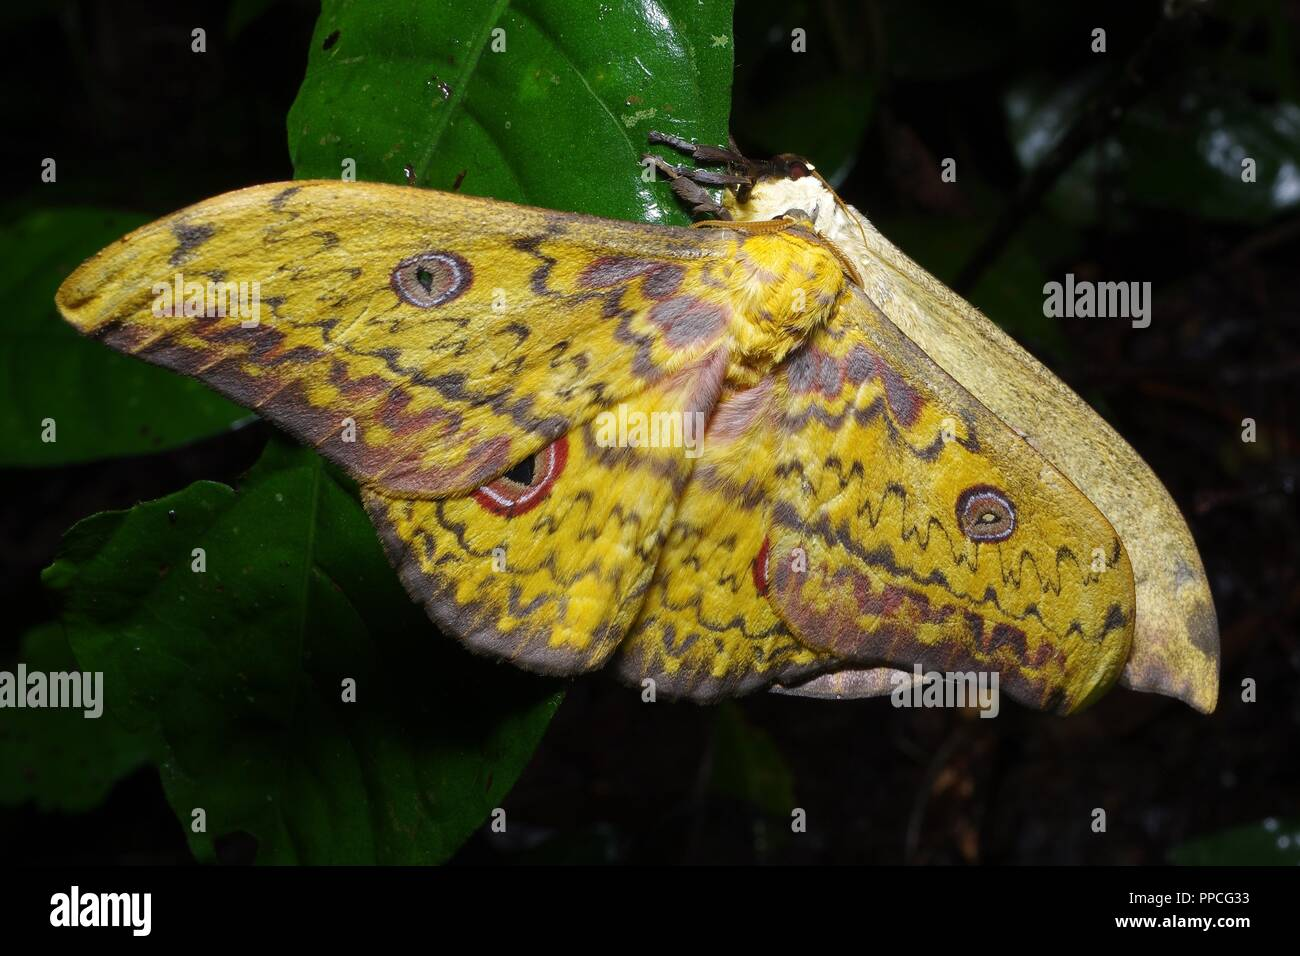 A mating pair of large, colorful silk moths (Aurivillius triramis) in the rainforest foliage at night in Atewa Range Forest Reserve, Ghana - Stock Image